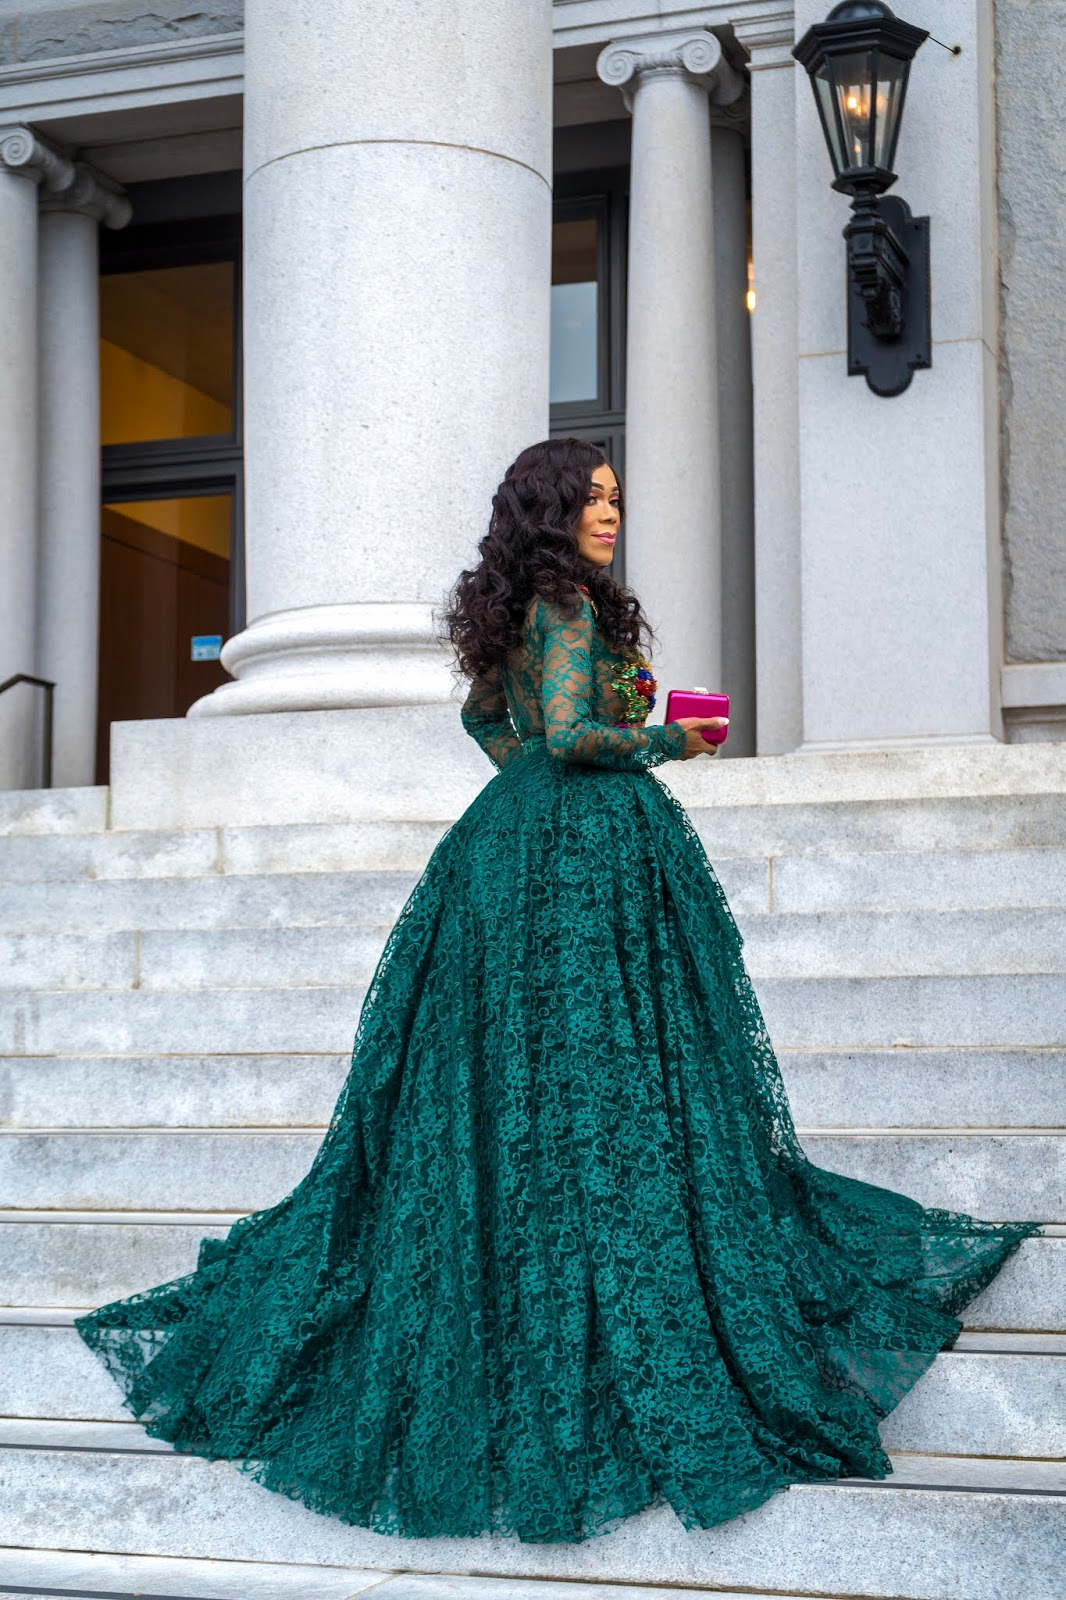 The Holiday Ball Gown